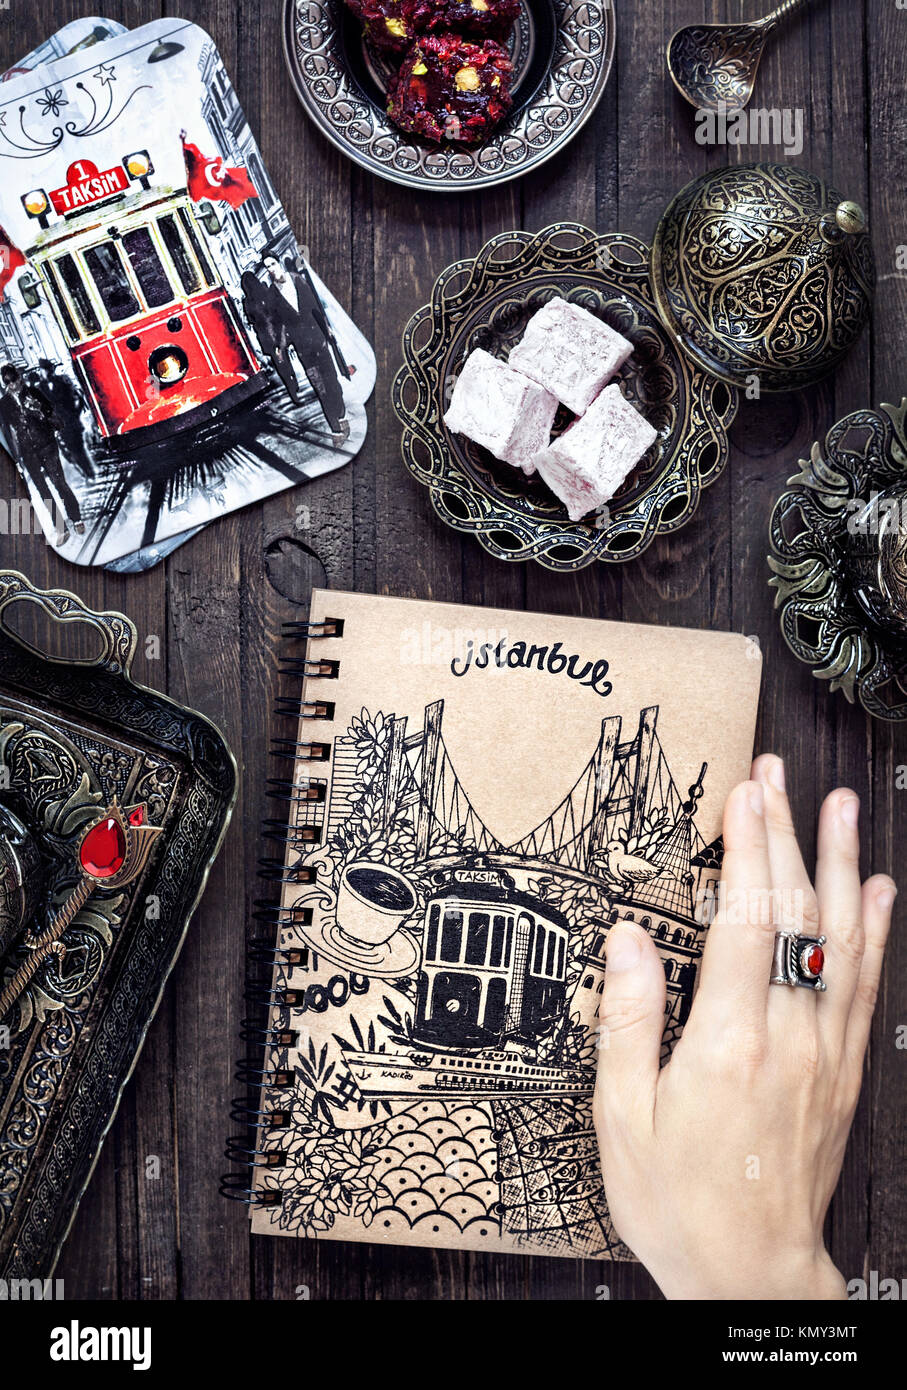 ISTANBUL, TURKEY – JUNE 8, 2016: Illustrative editorial photo with Turkish delights rakhat lokum, cards with old - Stock Image